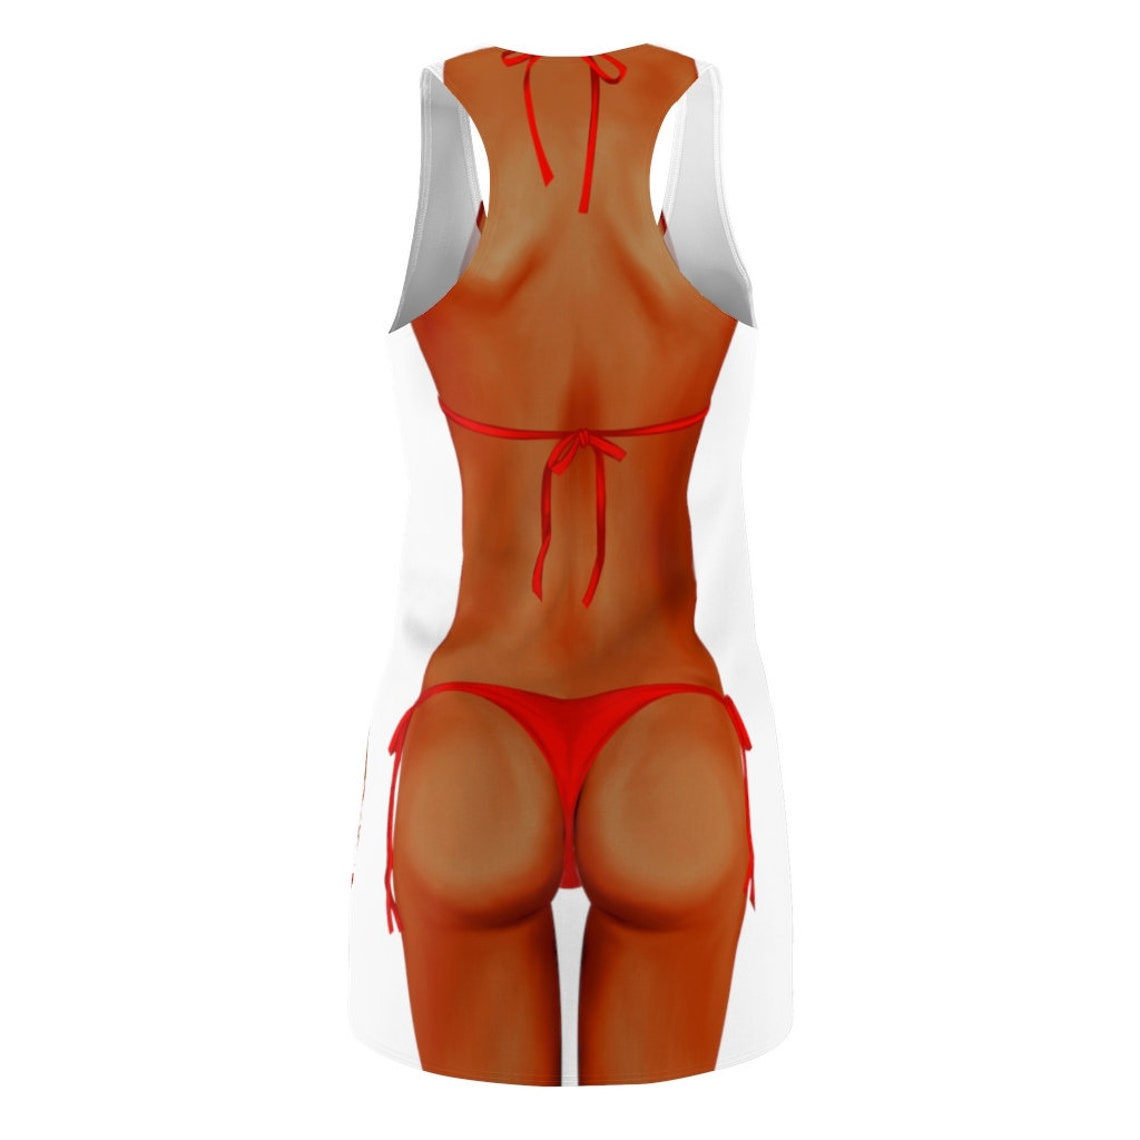 Vacation Olive Skin Tone Red Bikini-Cover Up ON SALE